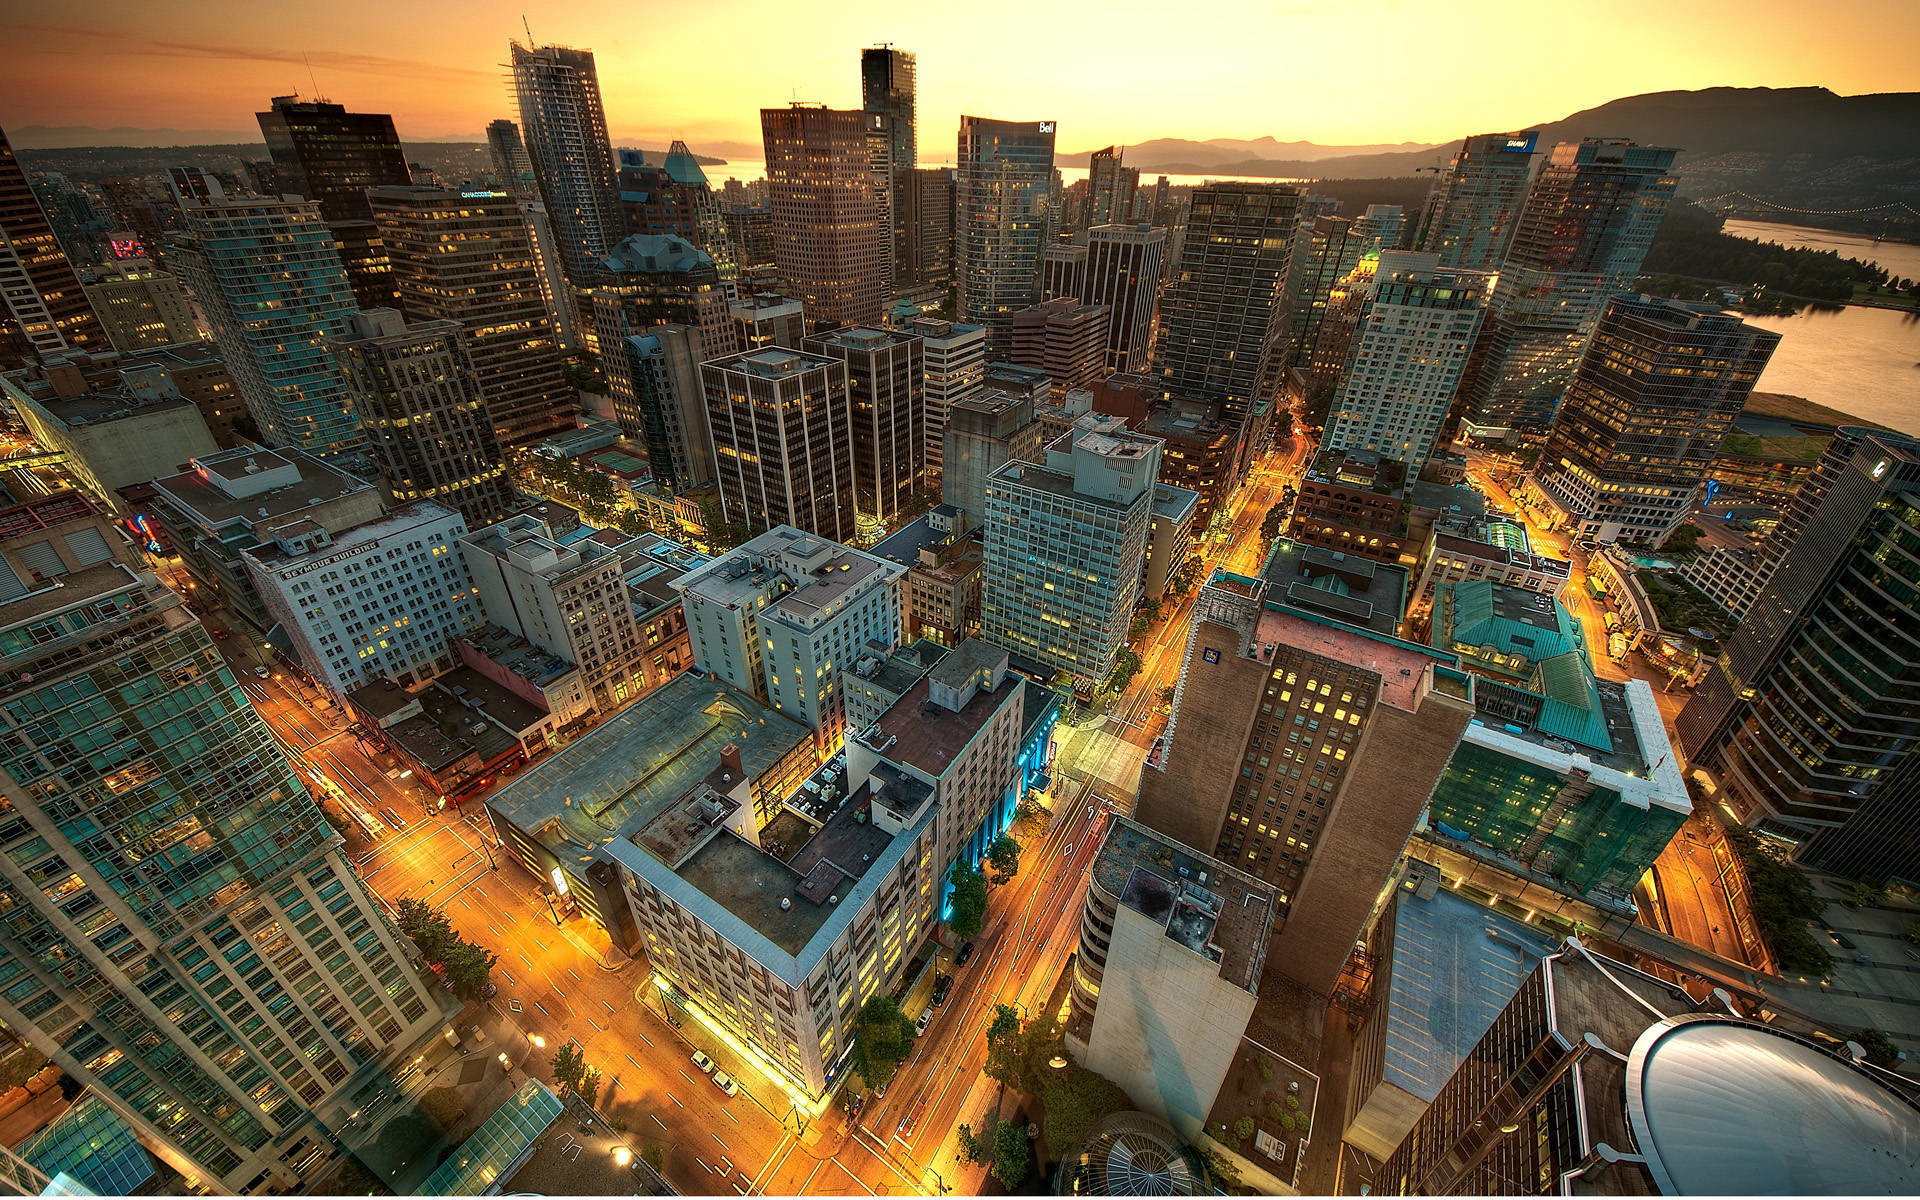 1920x1200 Downtown Vancouver Sunset in Canada city wallpaper